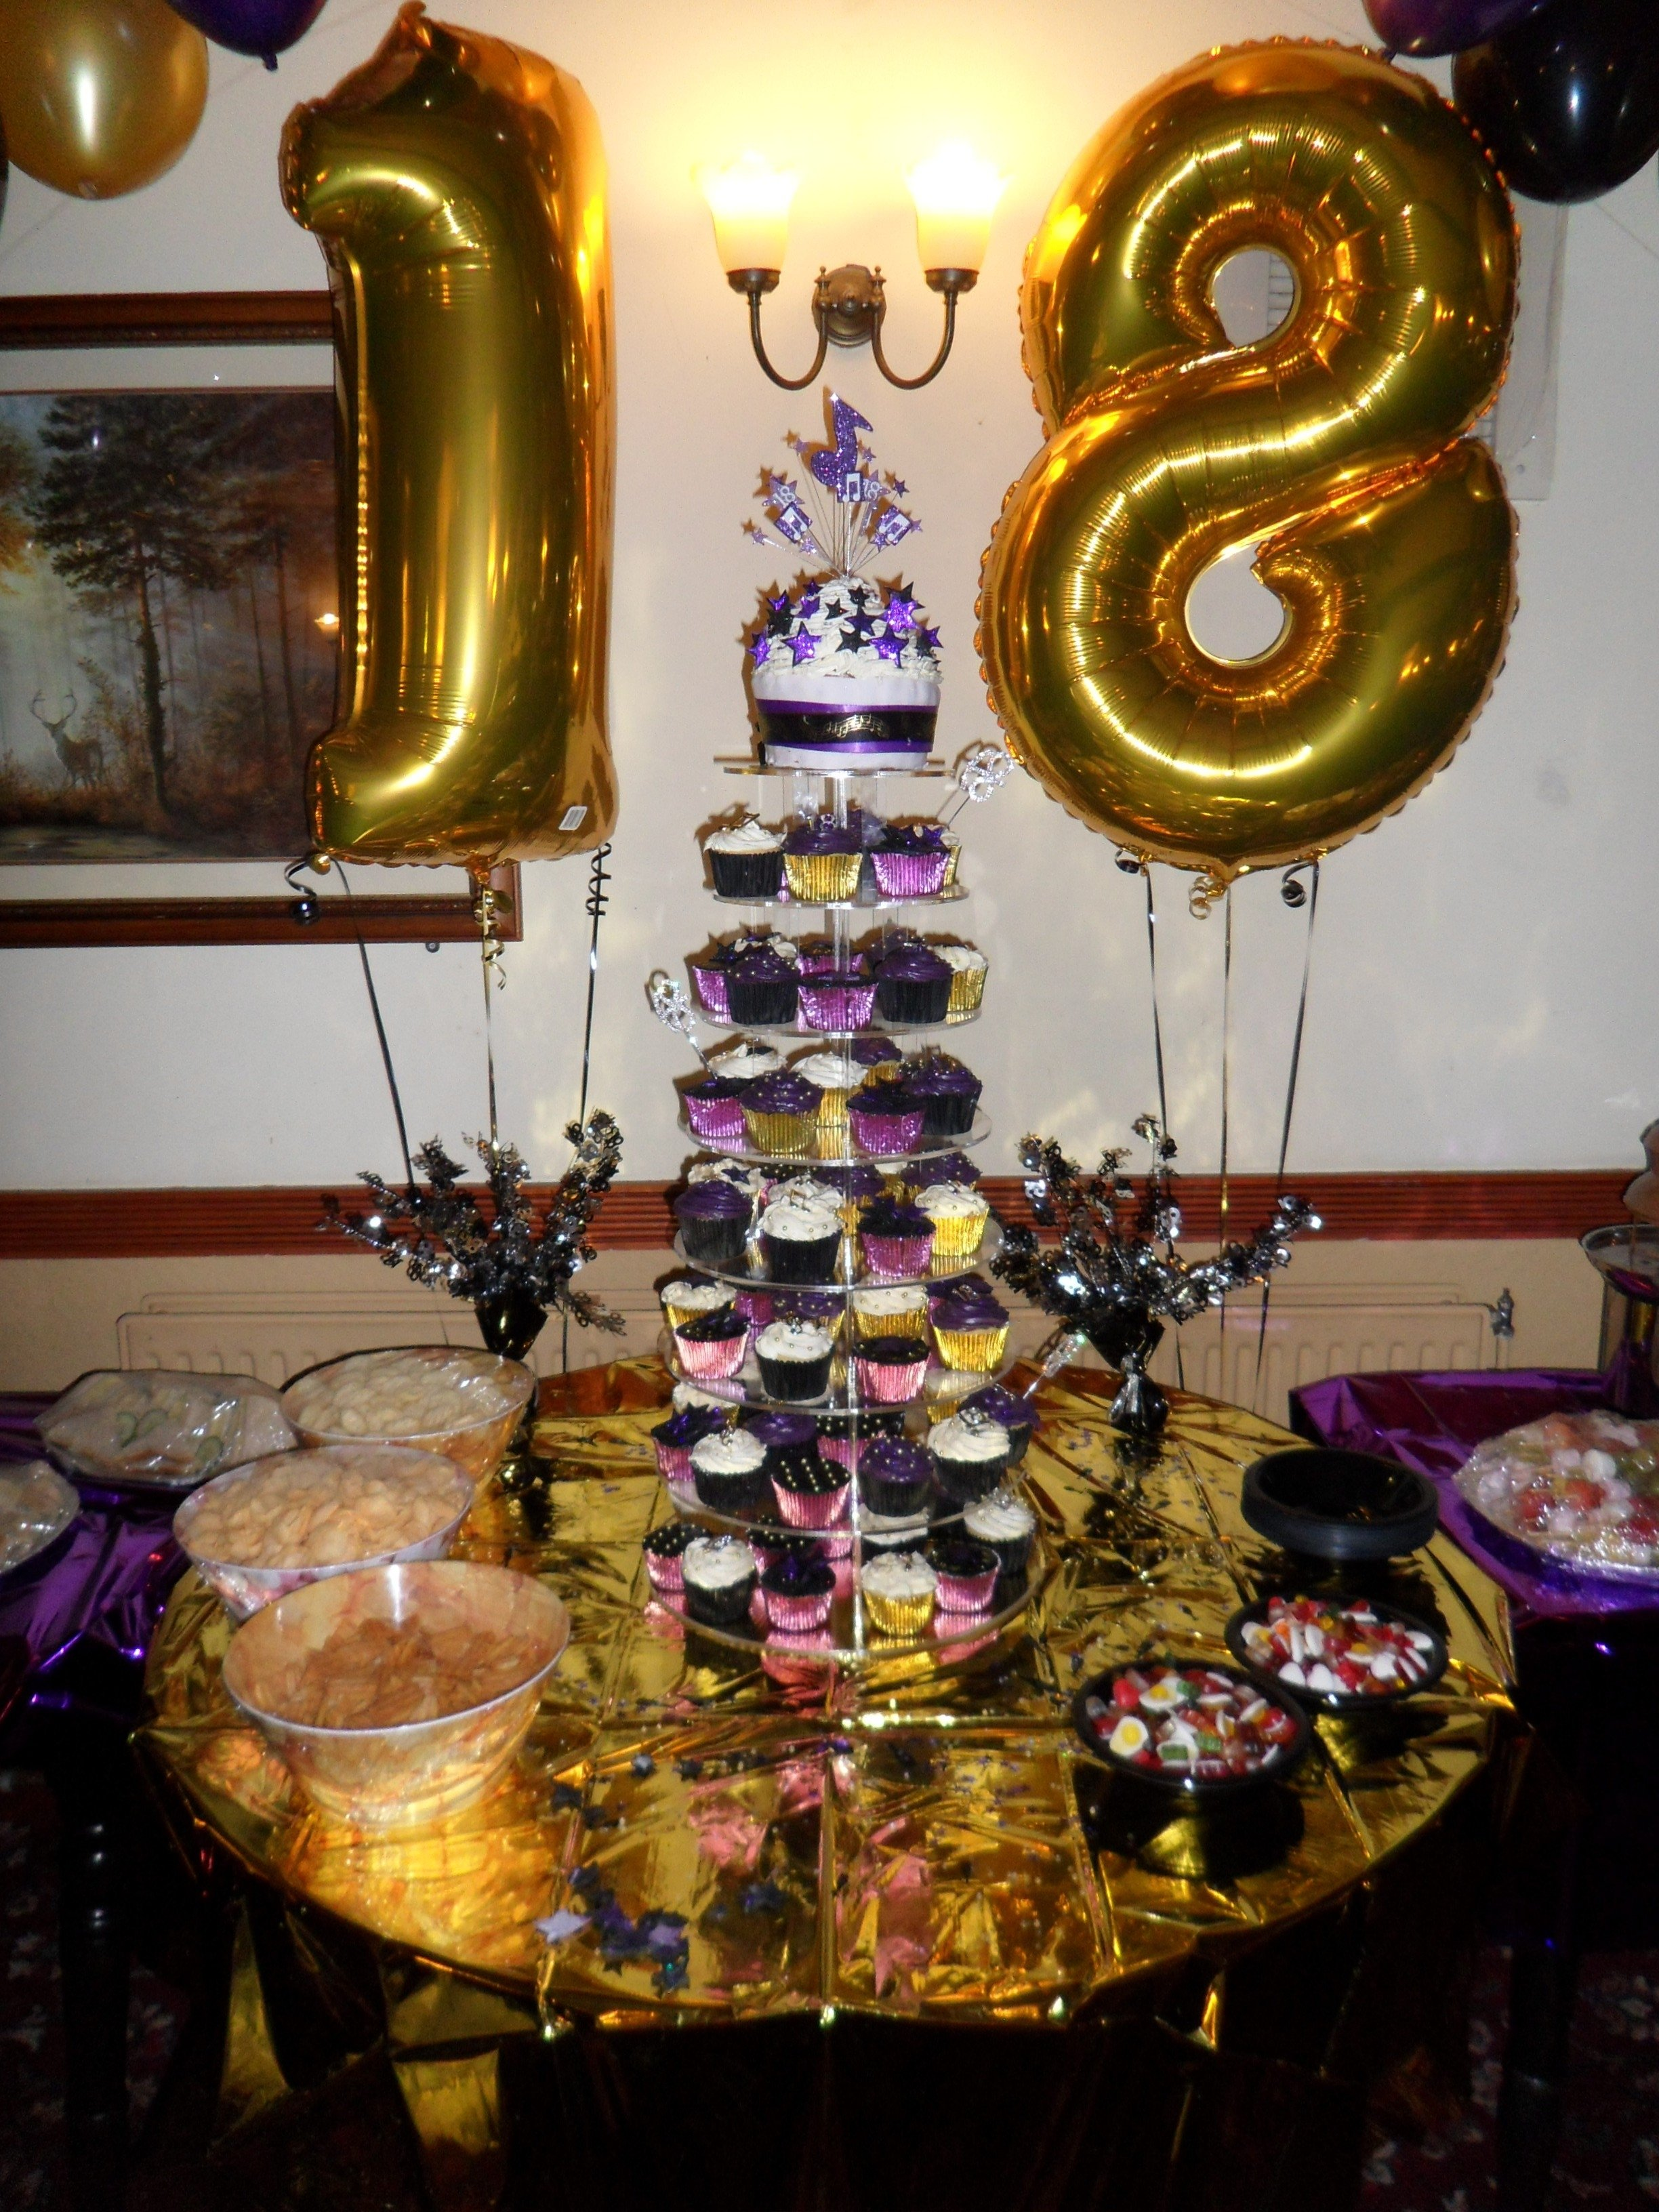 10 Wonderful Party Ideas For 18Th Birthday party ideas for 18th birthday birthday party ideas 2020